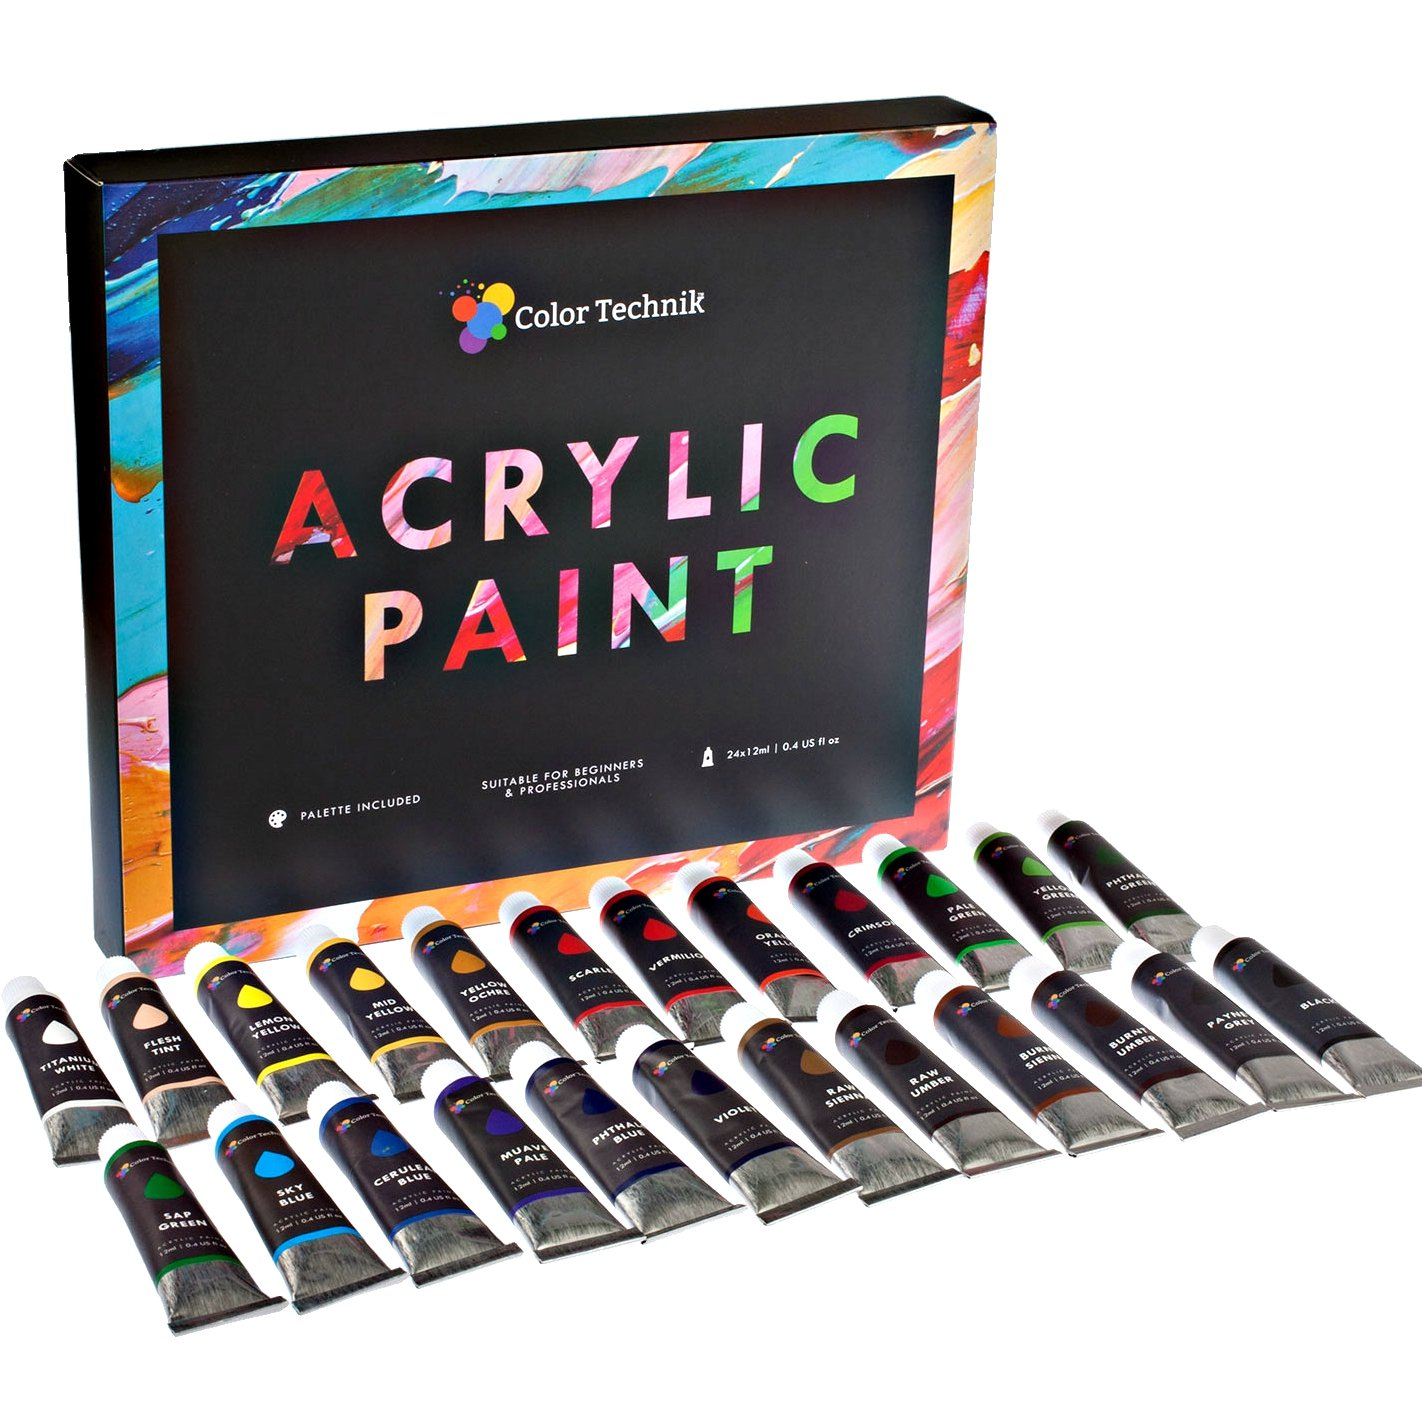 Color and art - Amazon Com Acrylic Paint Set By Color Technik Professional Artist Quality Palette Included 24 Aluminium Tubes Best Colors For Painting Canvas Wood